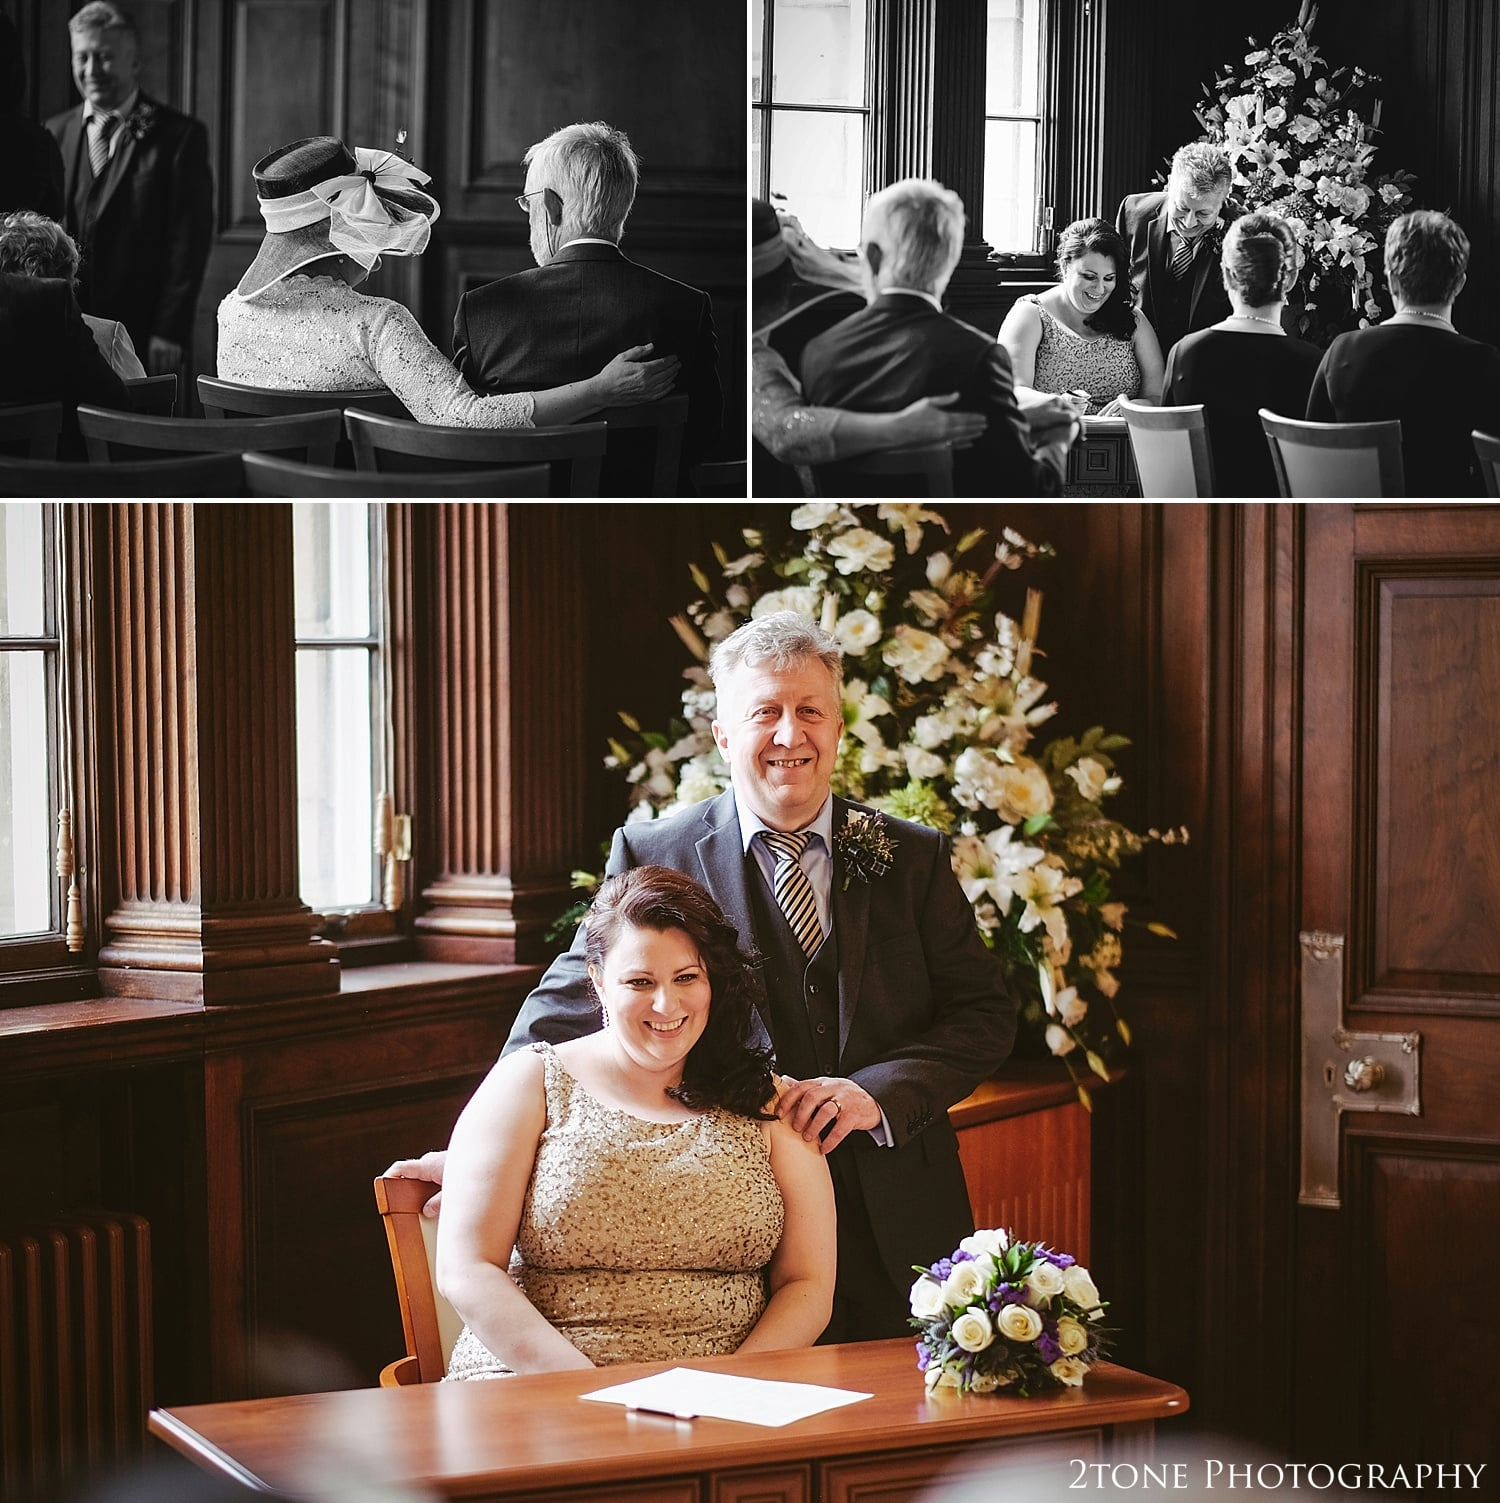 Signing the register.  Wedding Photography at the Lothian Chambers in Edinburgh by 2tone Photography